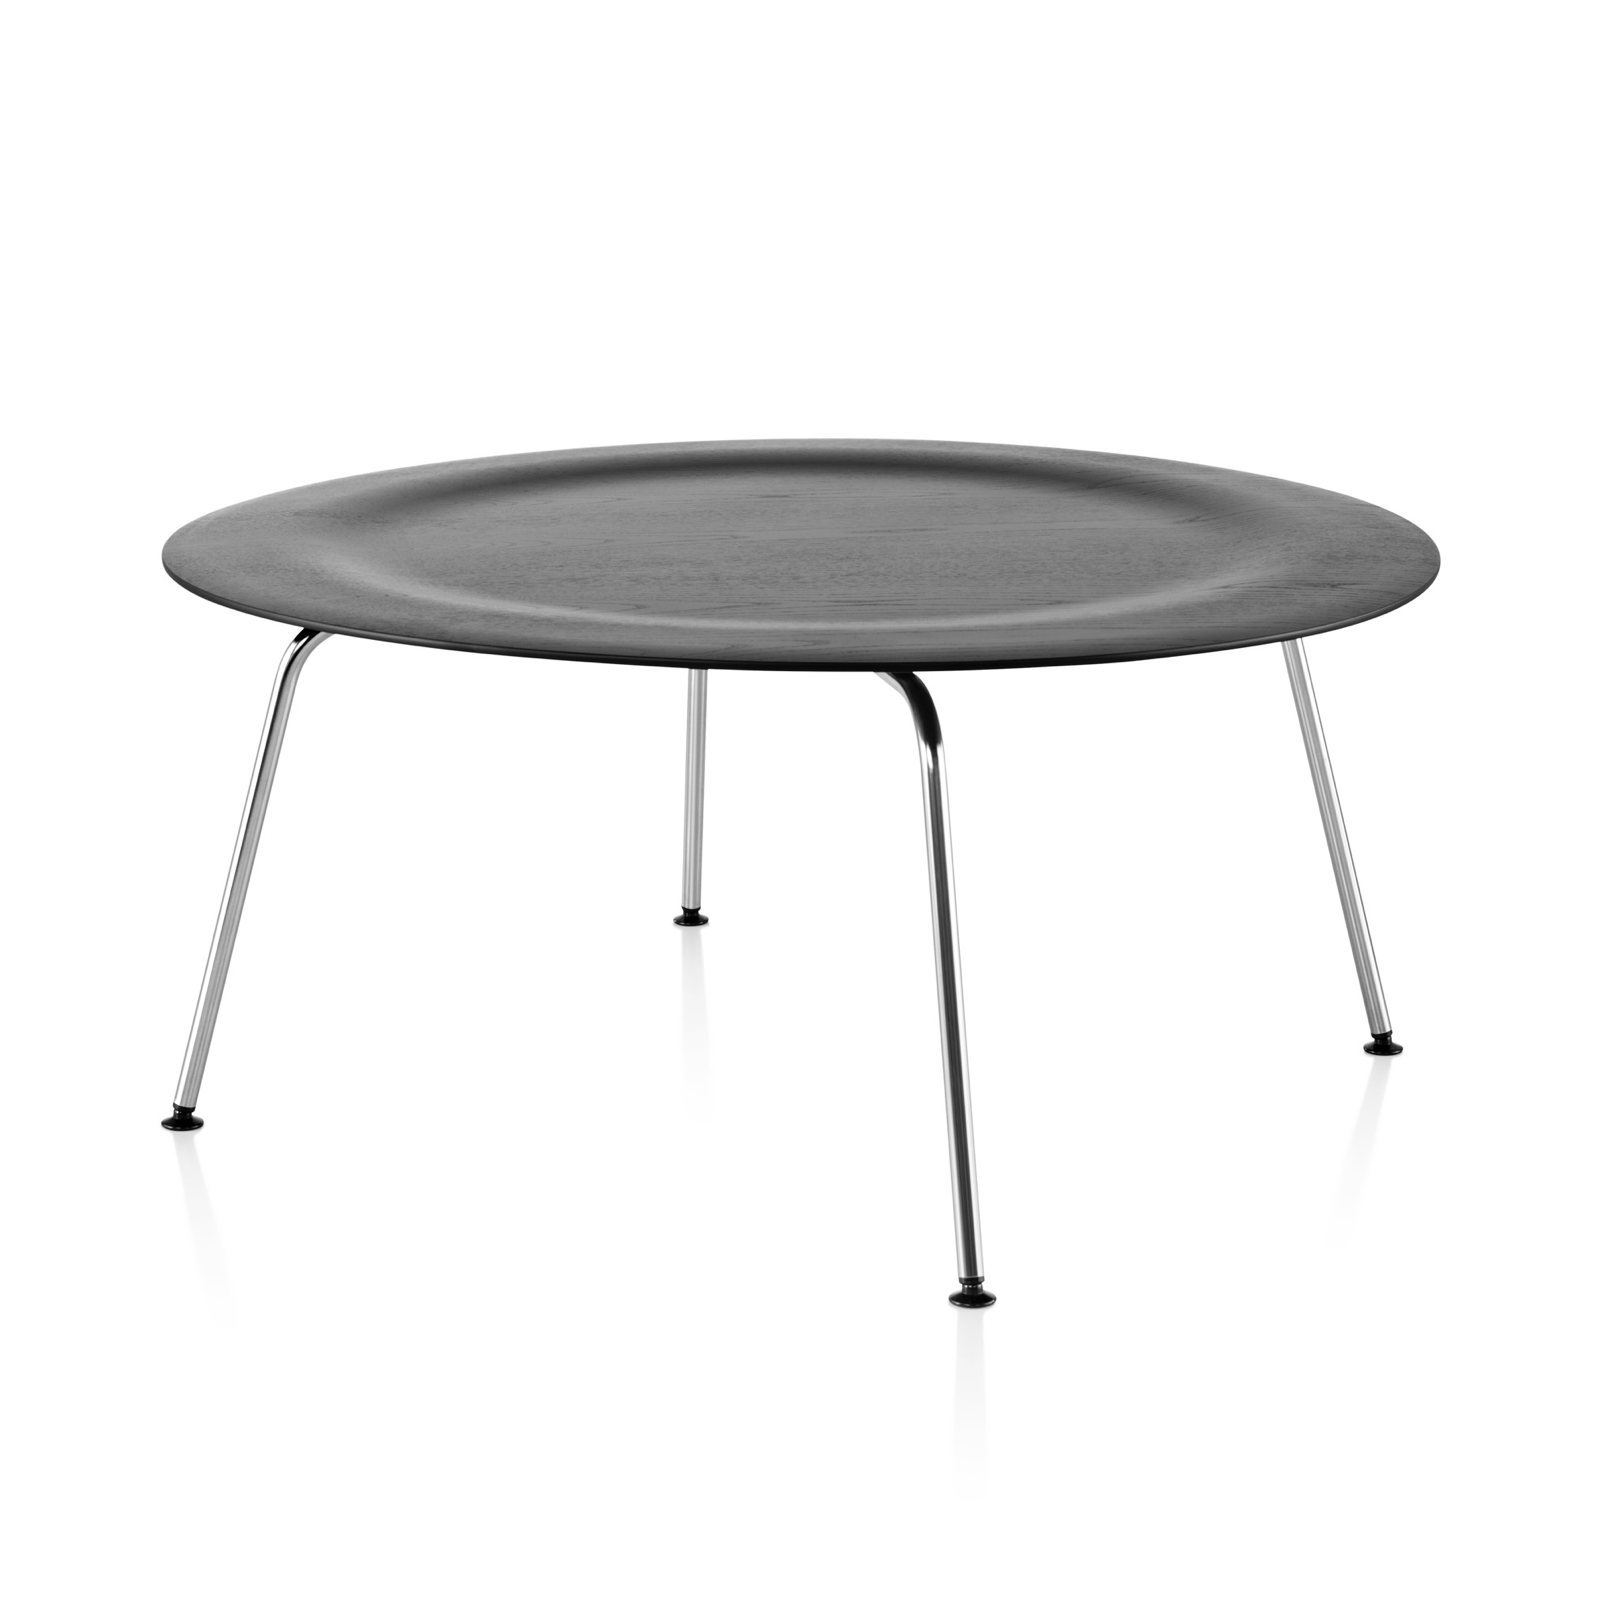 Eames Coffee Table Square: Eames Molded Plywood Coffee Table Metal Base By Charles